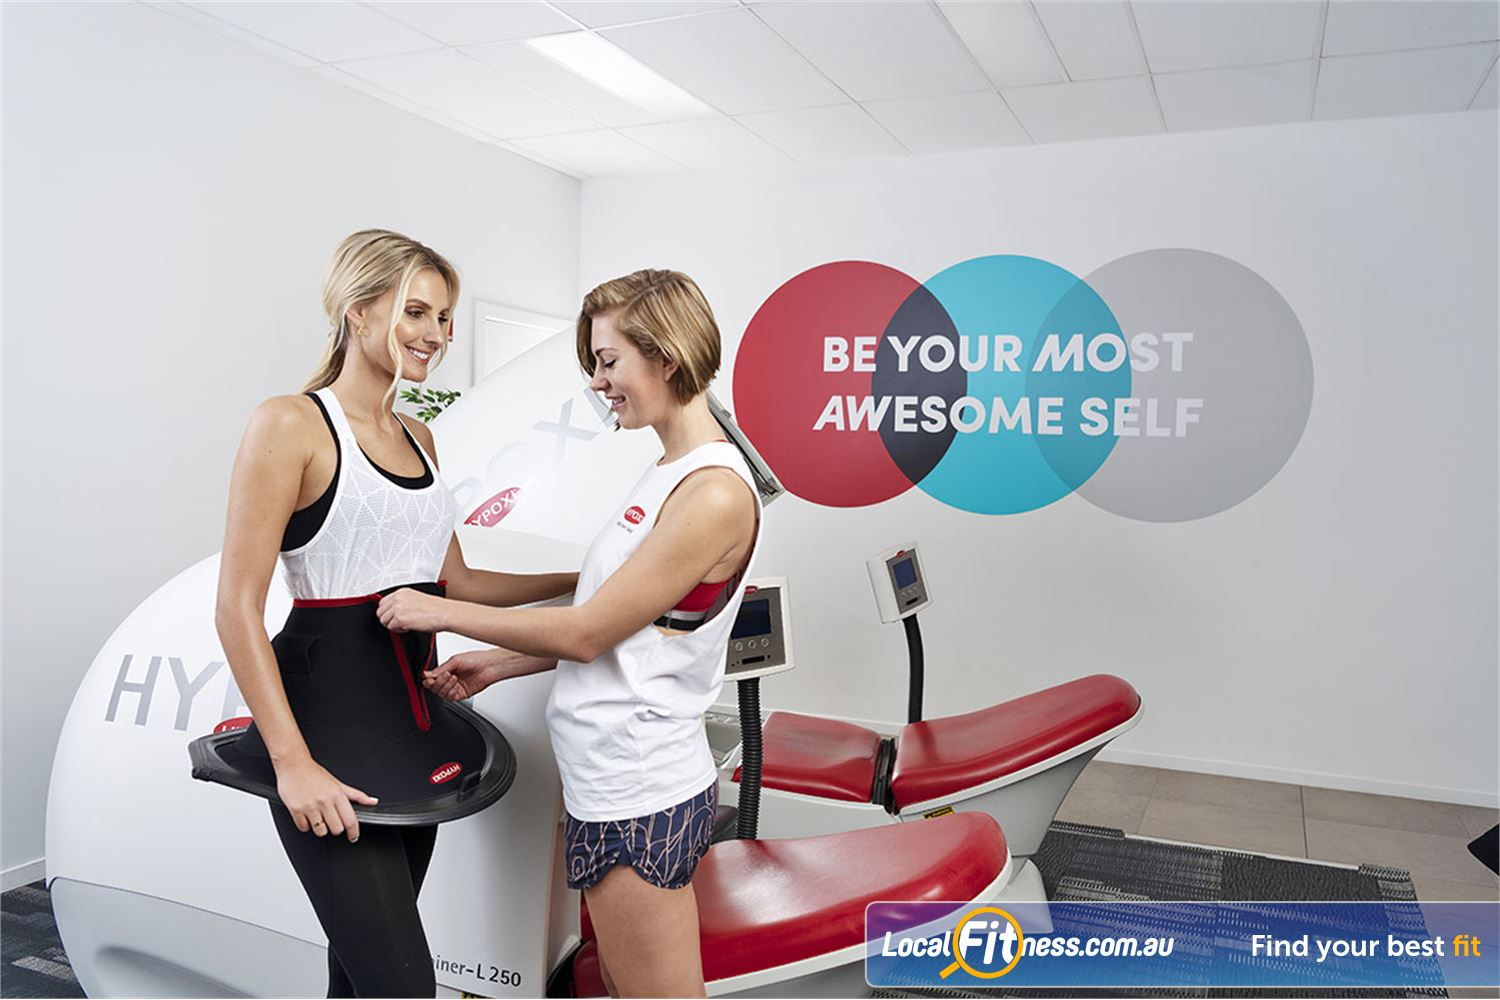 HYPOXI Weight Loss Newtown Welcome to the HYPOXI Newtown weight-loss studio.